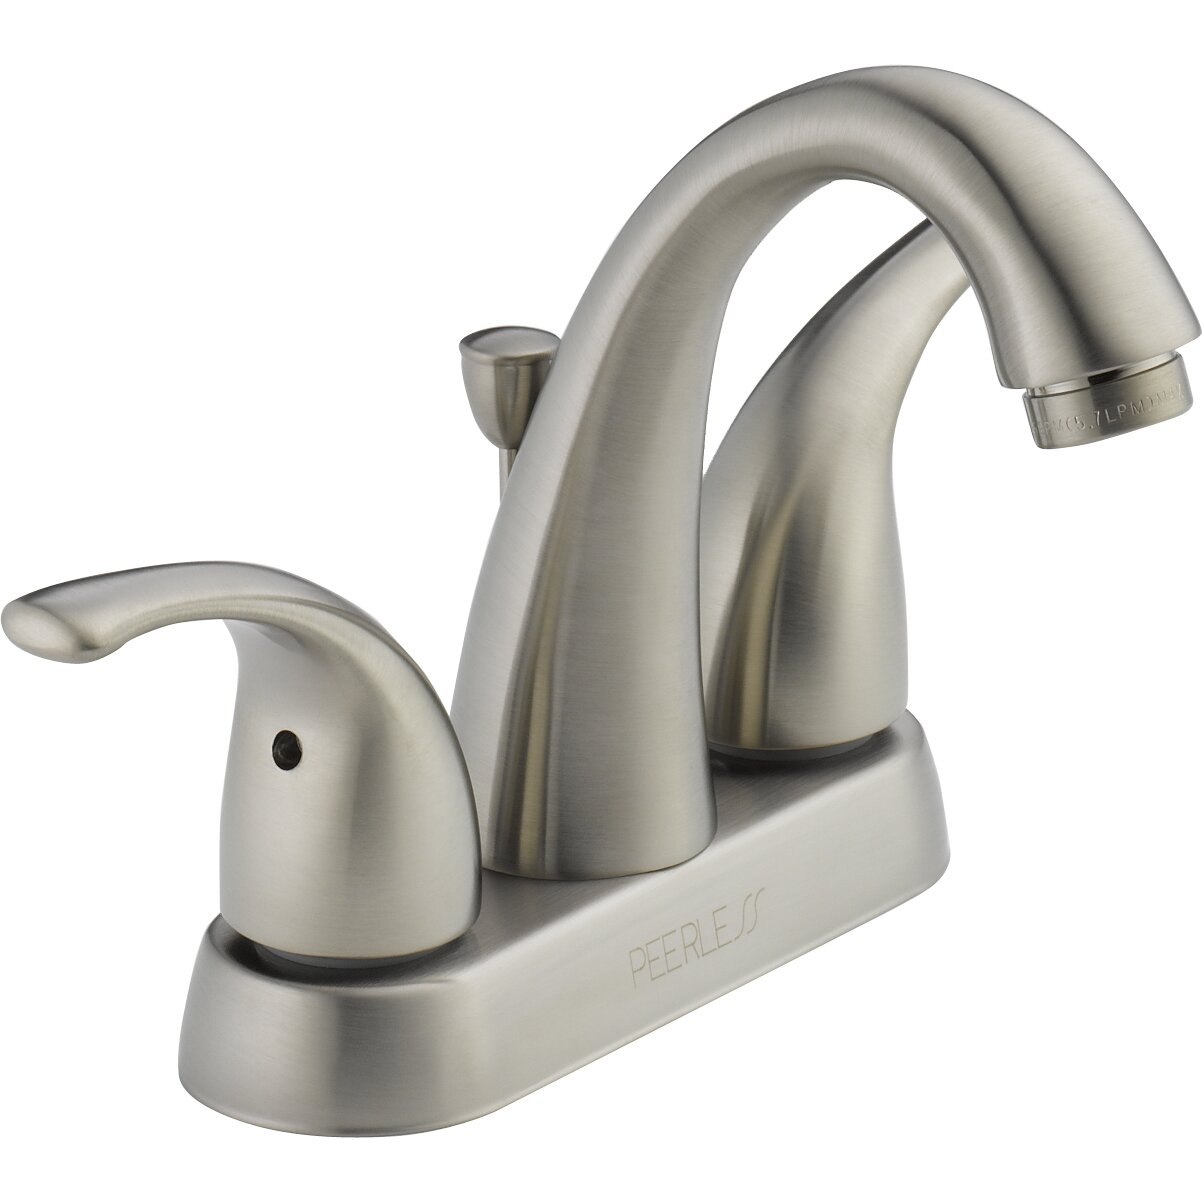 Peerless Faucets Centerset Bathroom Faucet With Double